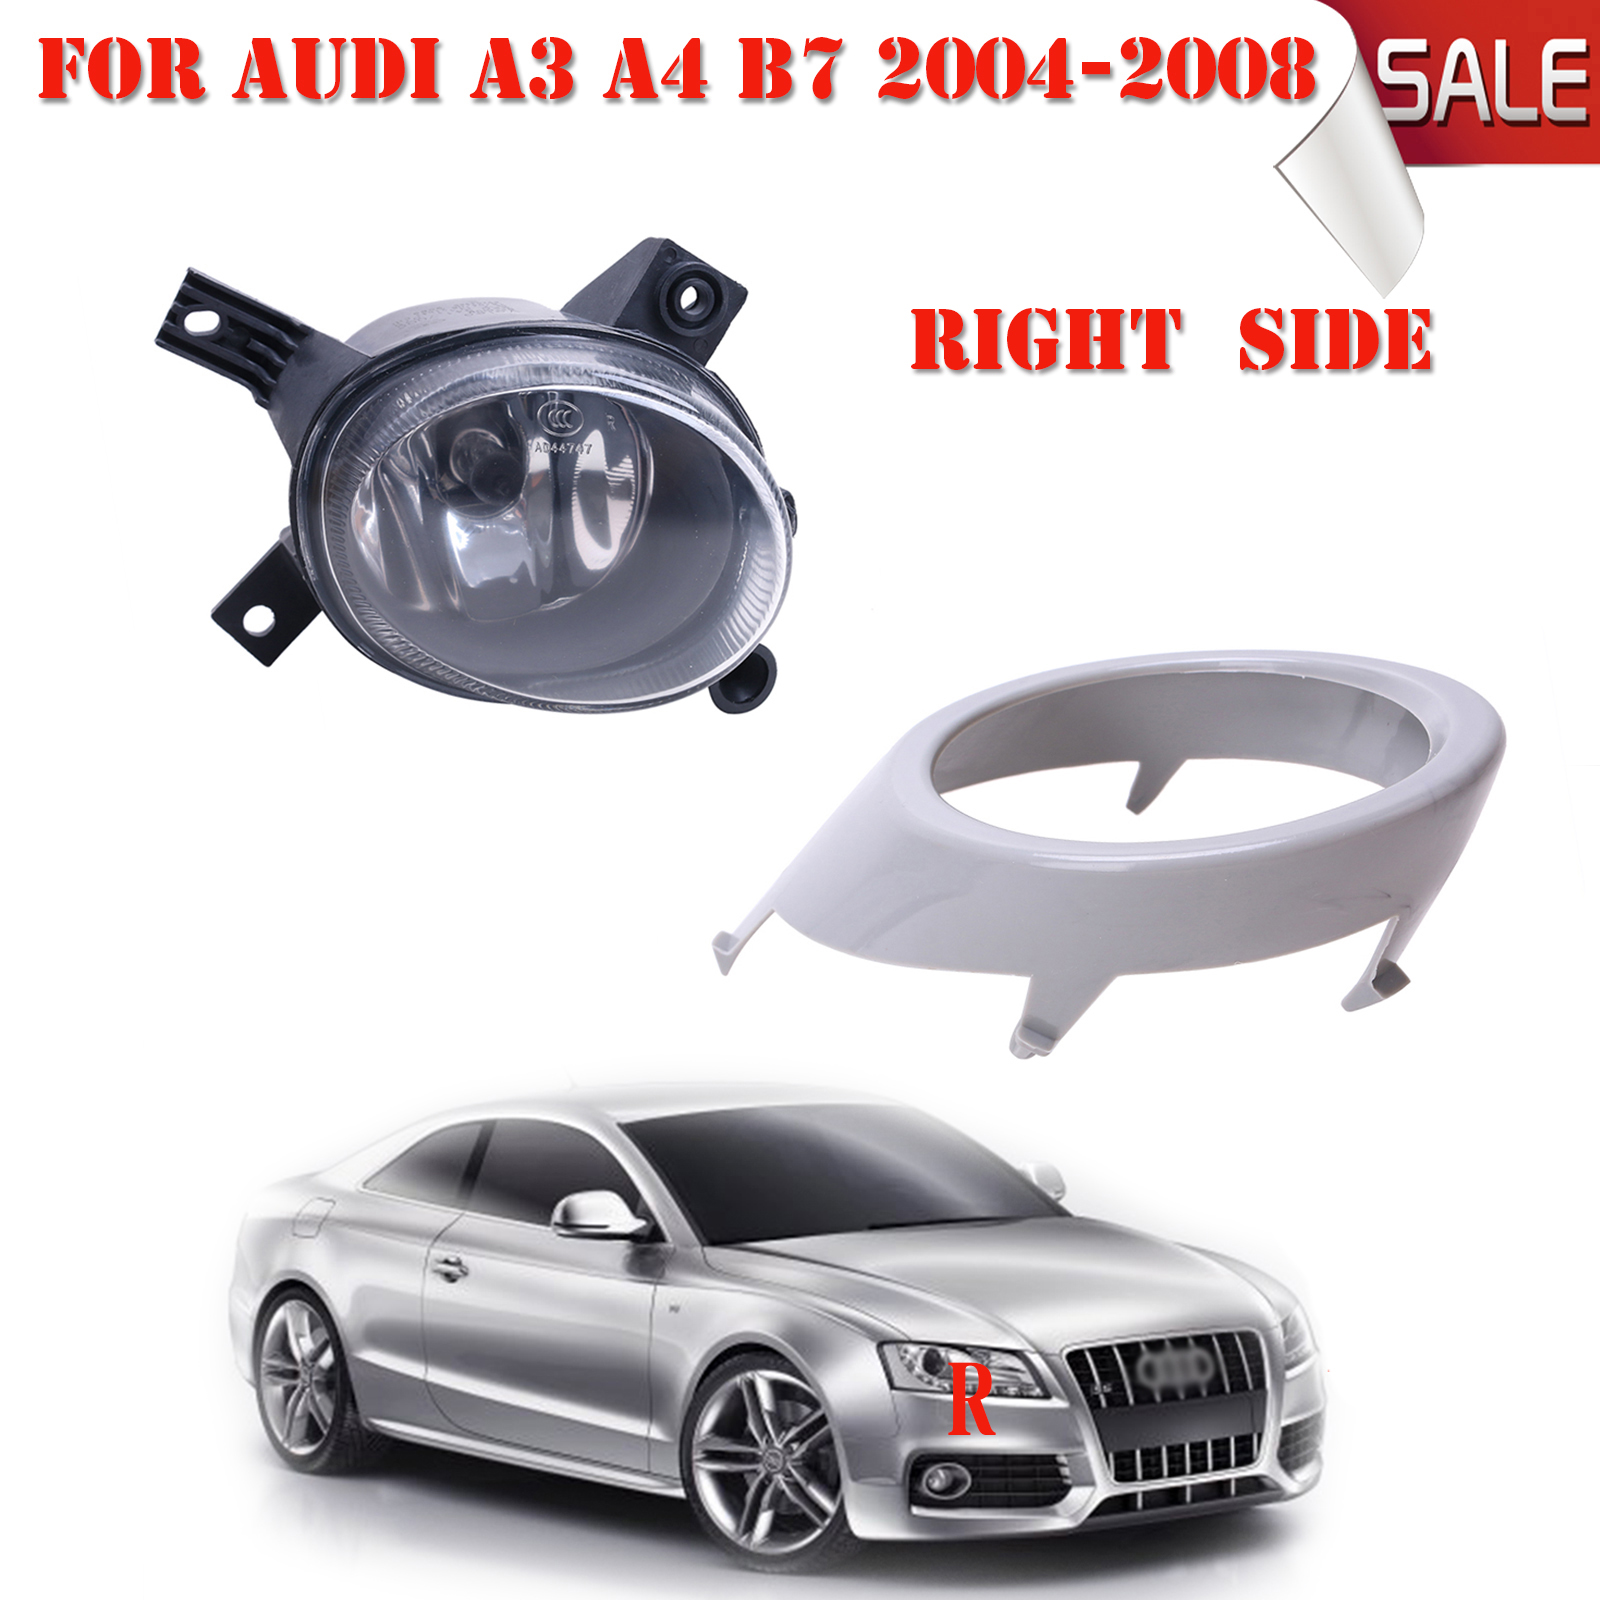 Right Side Front Bumper Grill Cover with Fog Light Lamp For Audi A3 A4 B7 2004-2008 with Bulbs H11 Car Accessories #P328 brand new car dashboard cover for audi tt dash cover mat right hand driver